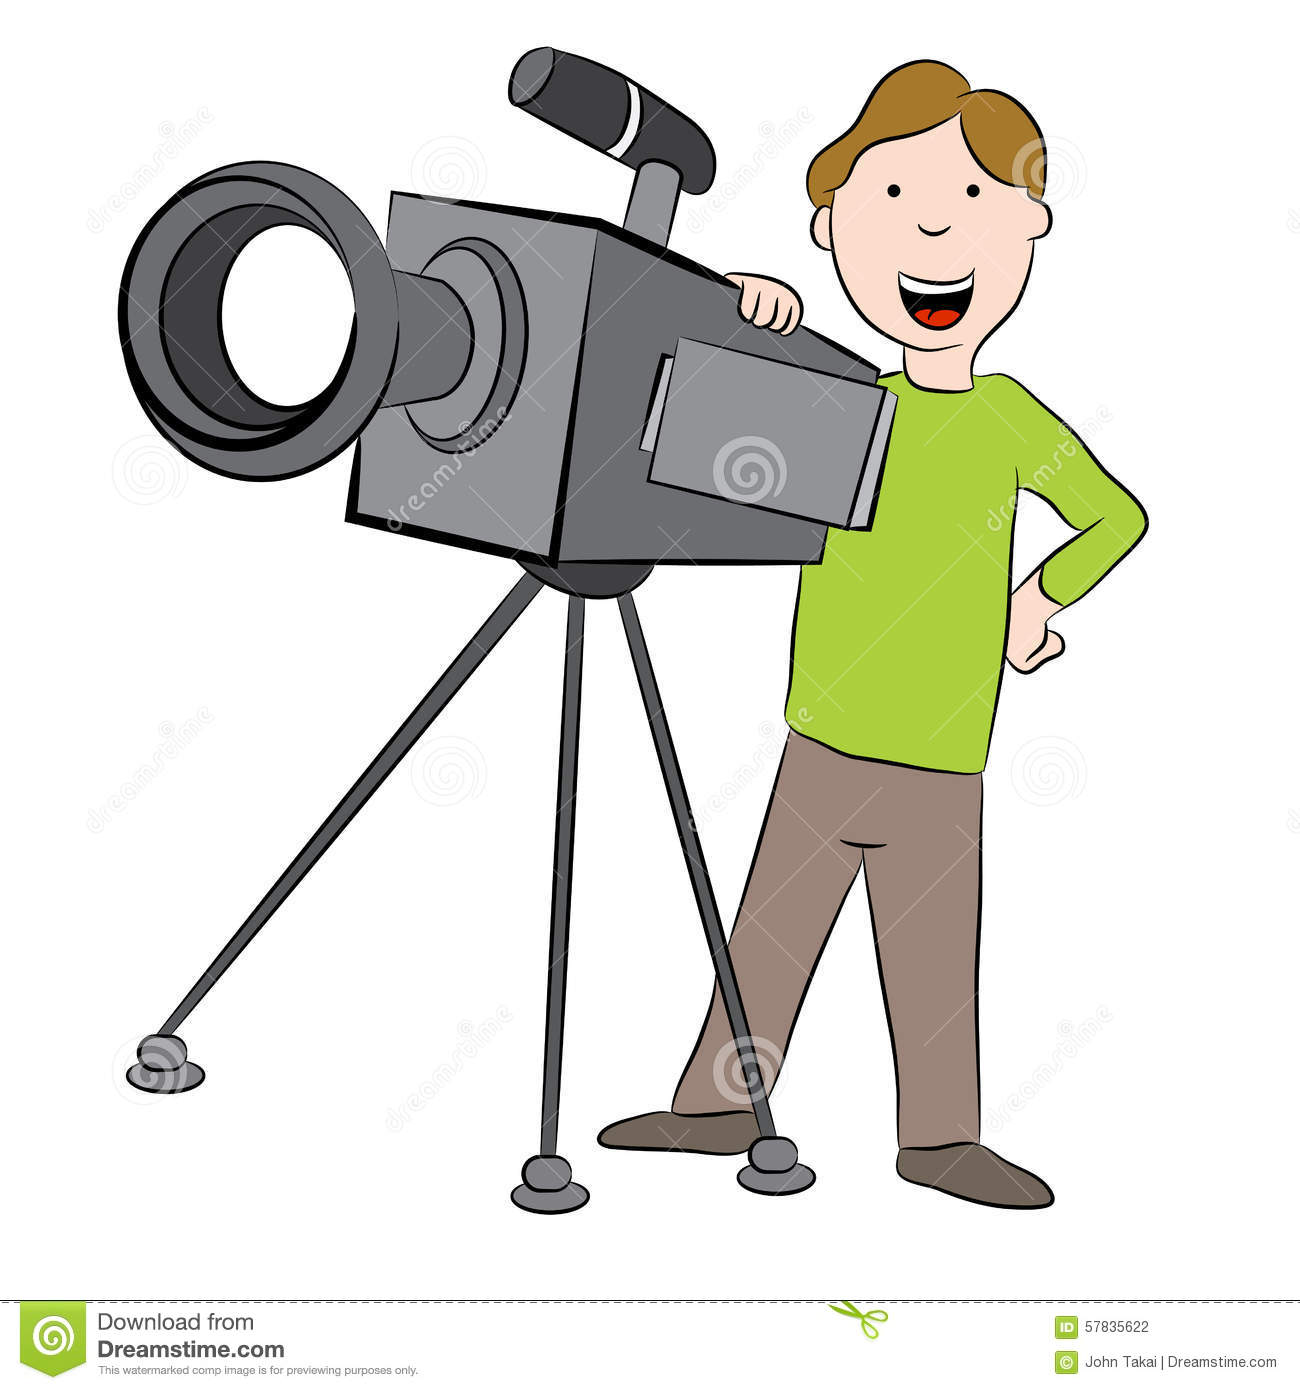 An image of a cartoon cameraman standing behind television camera.